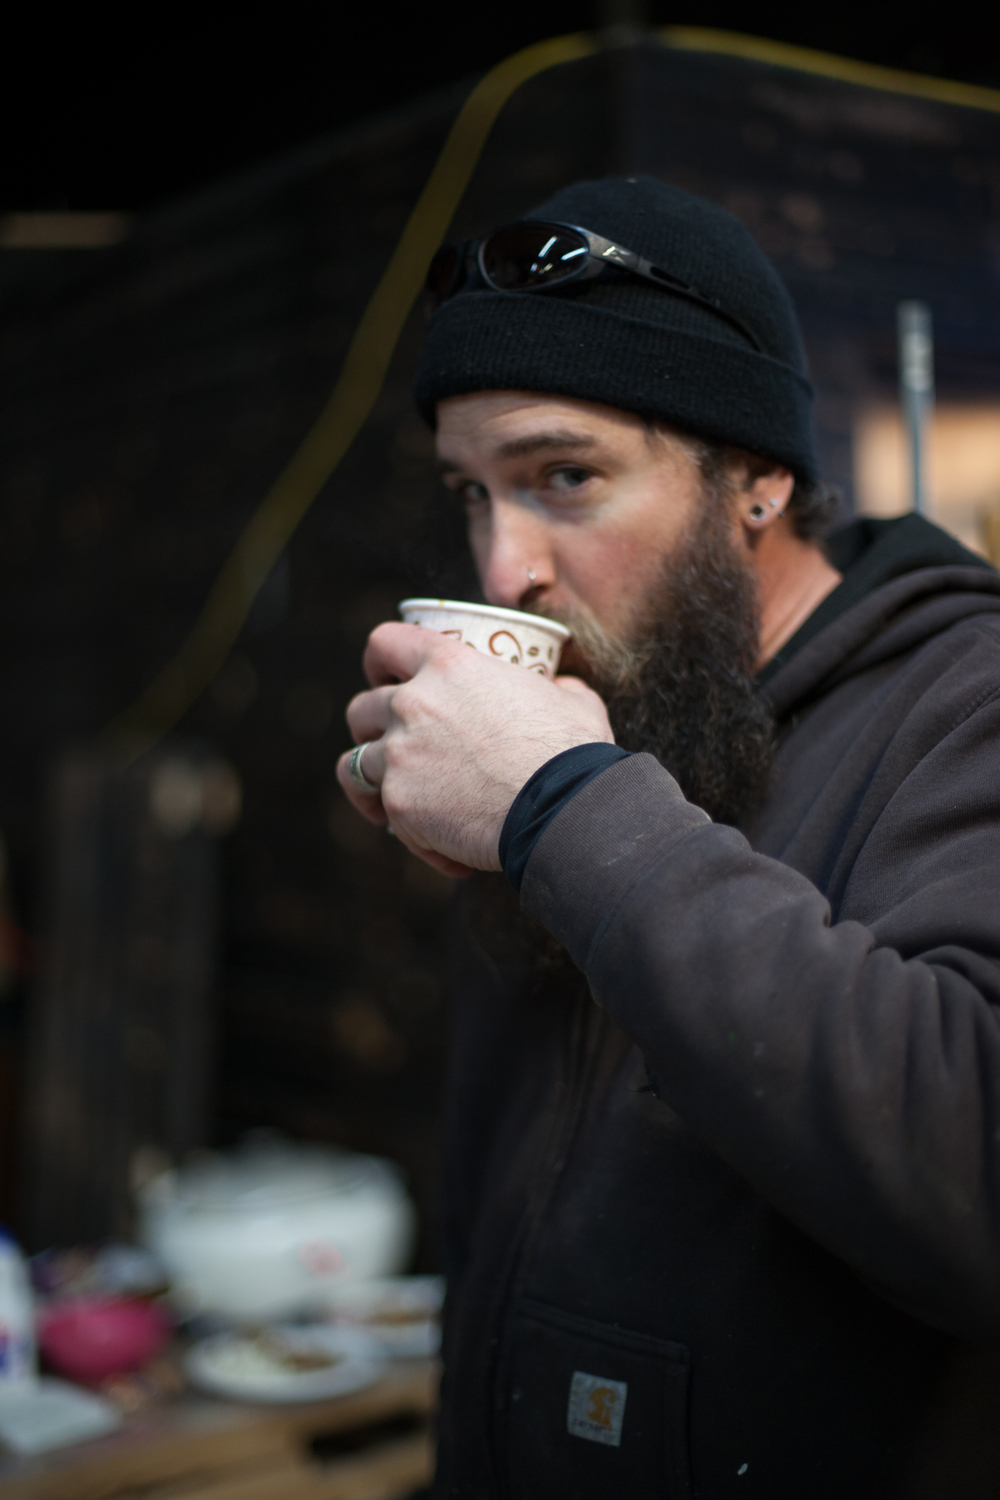 Mat O'Brien drinking Crossroads Coffee from the Maker's Mug at Open Bench Project, 2015